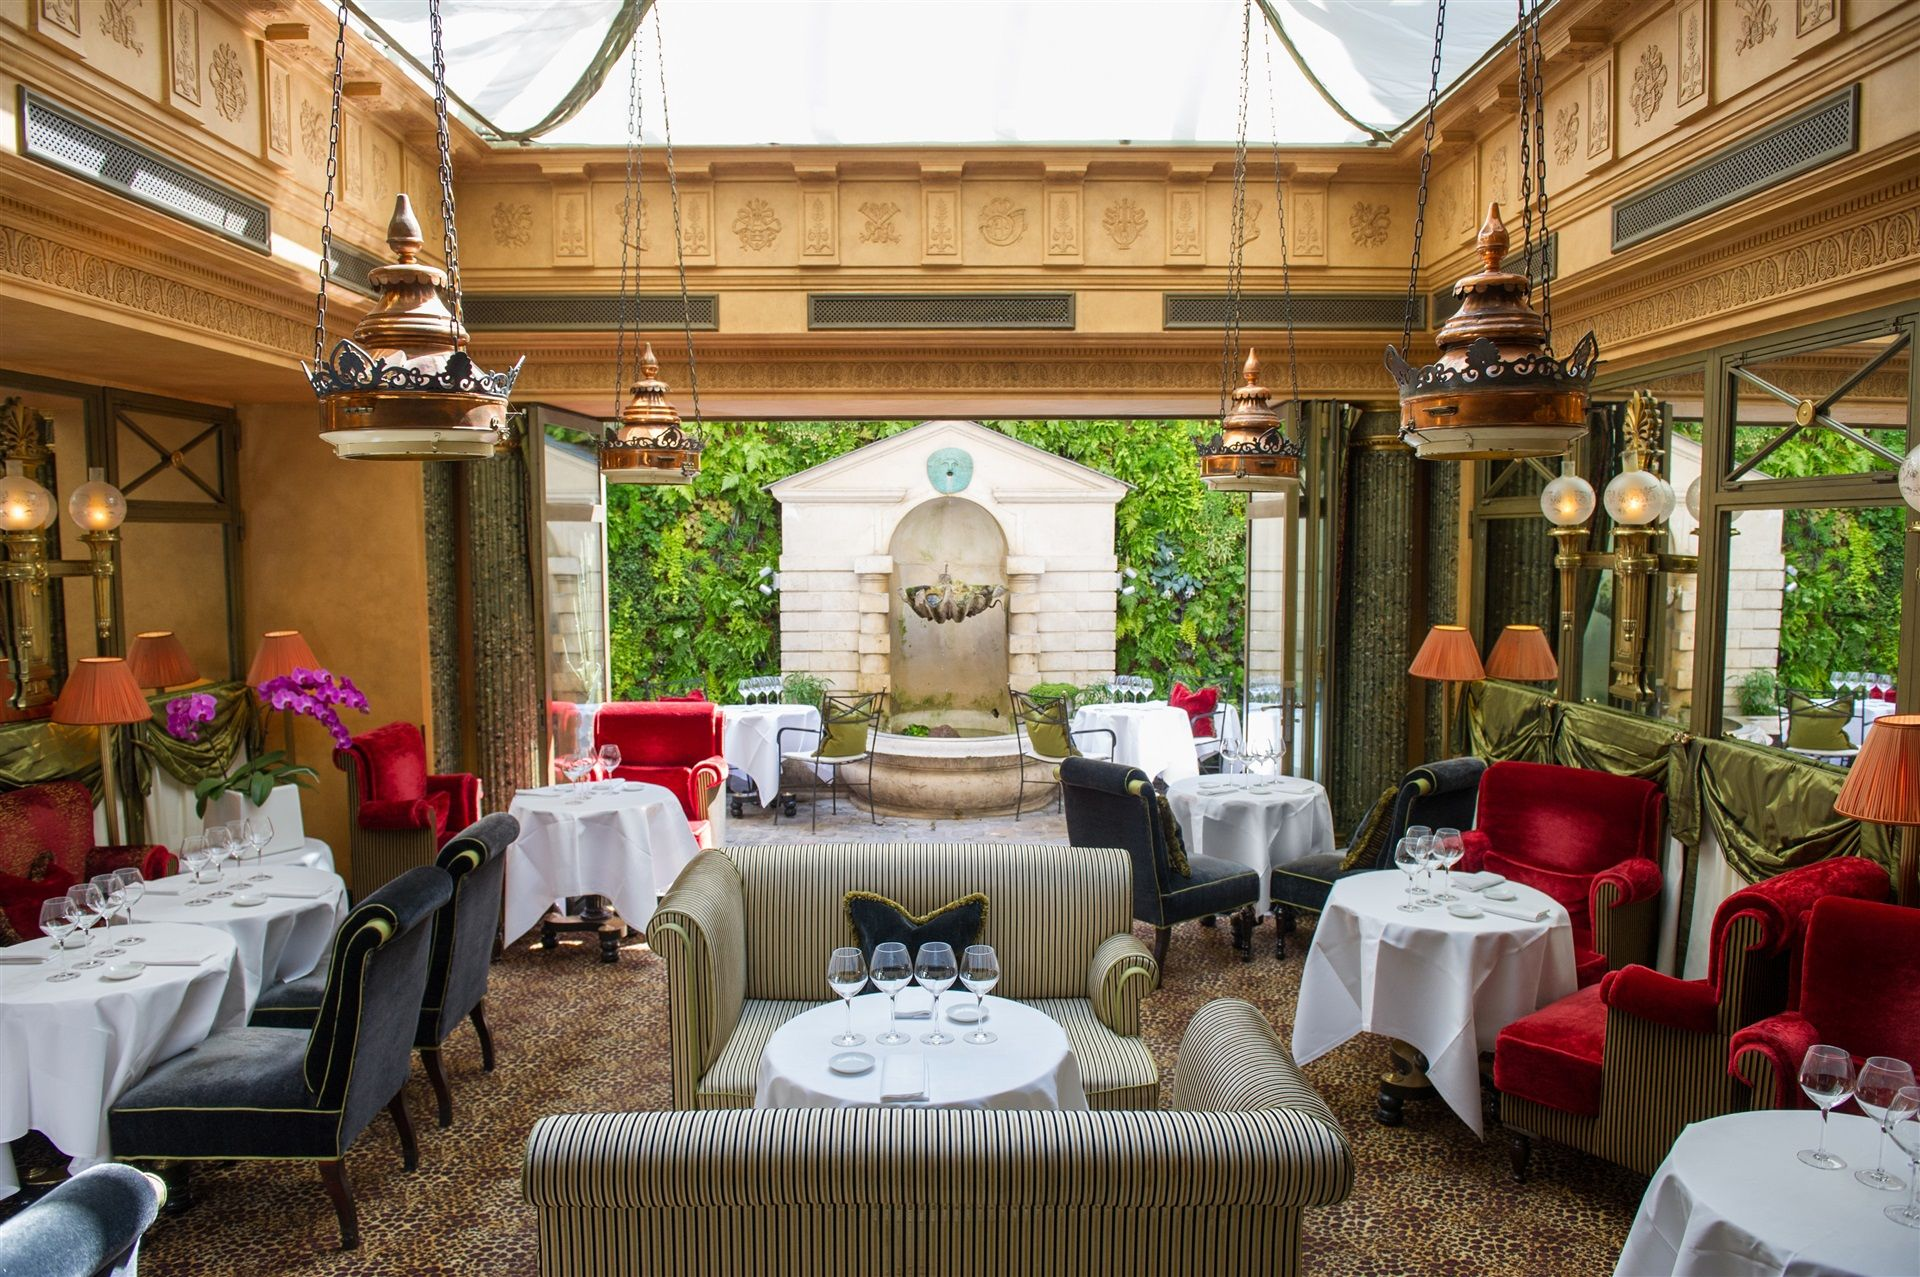 L_Hotel_Paris_Le_Restaurant_2